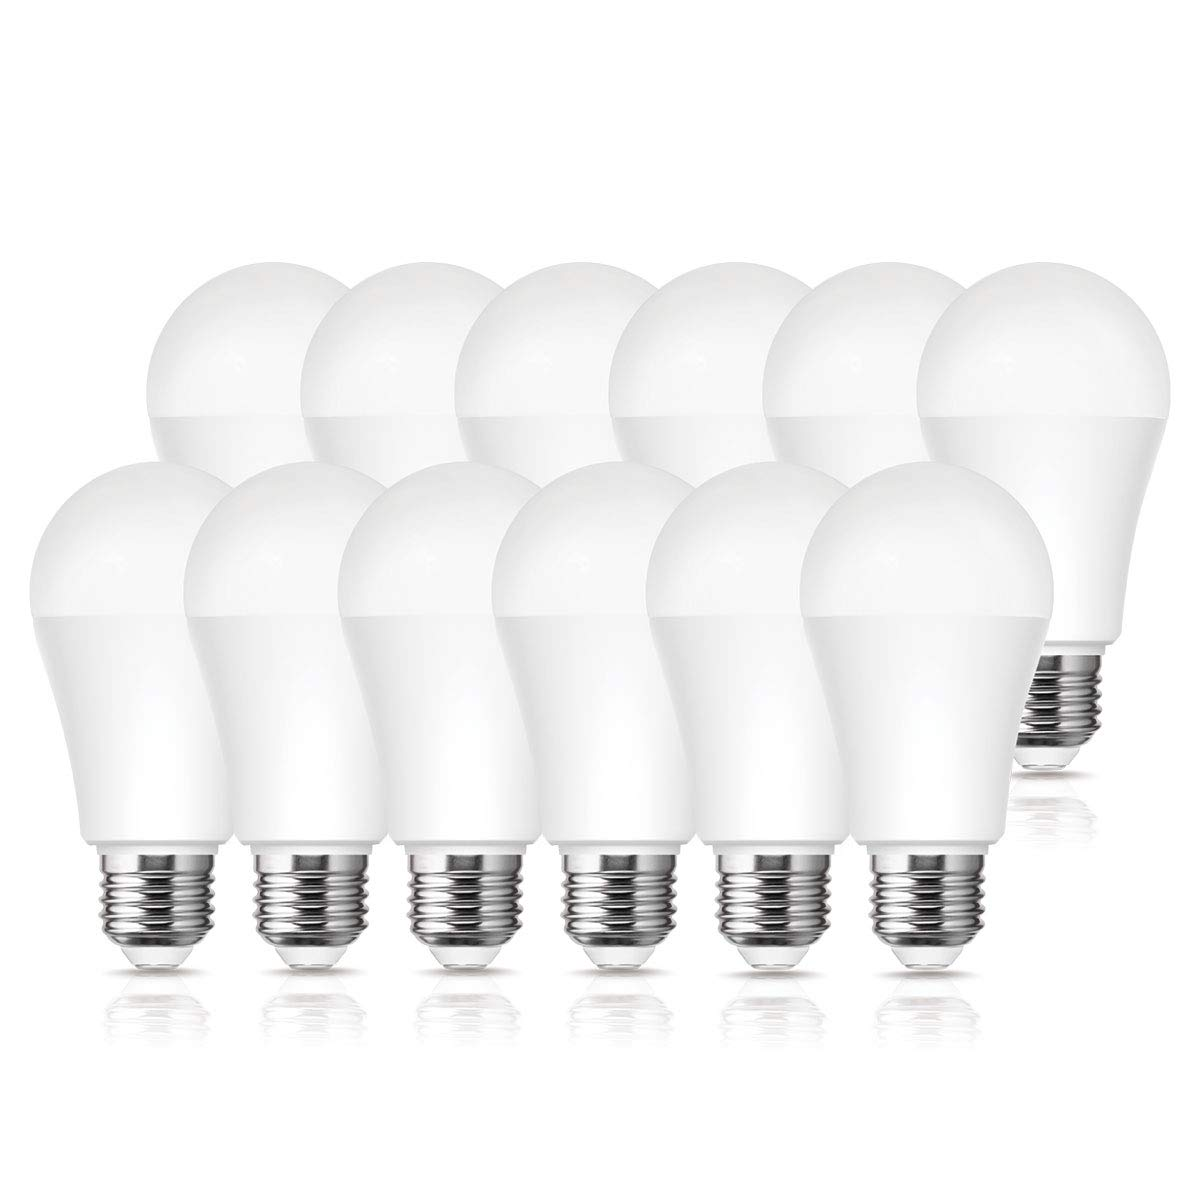 Available Warm Cool White JandCase GU10 Tunable LED Bulbs with Remote Control 40W Equivalent 350lm 2 Pack Adjustable Home Lighting Dimmable 5W Color Changing Light Bulbs 2700K-6500K